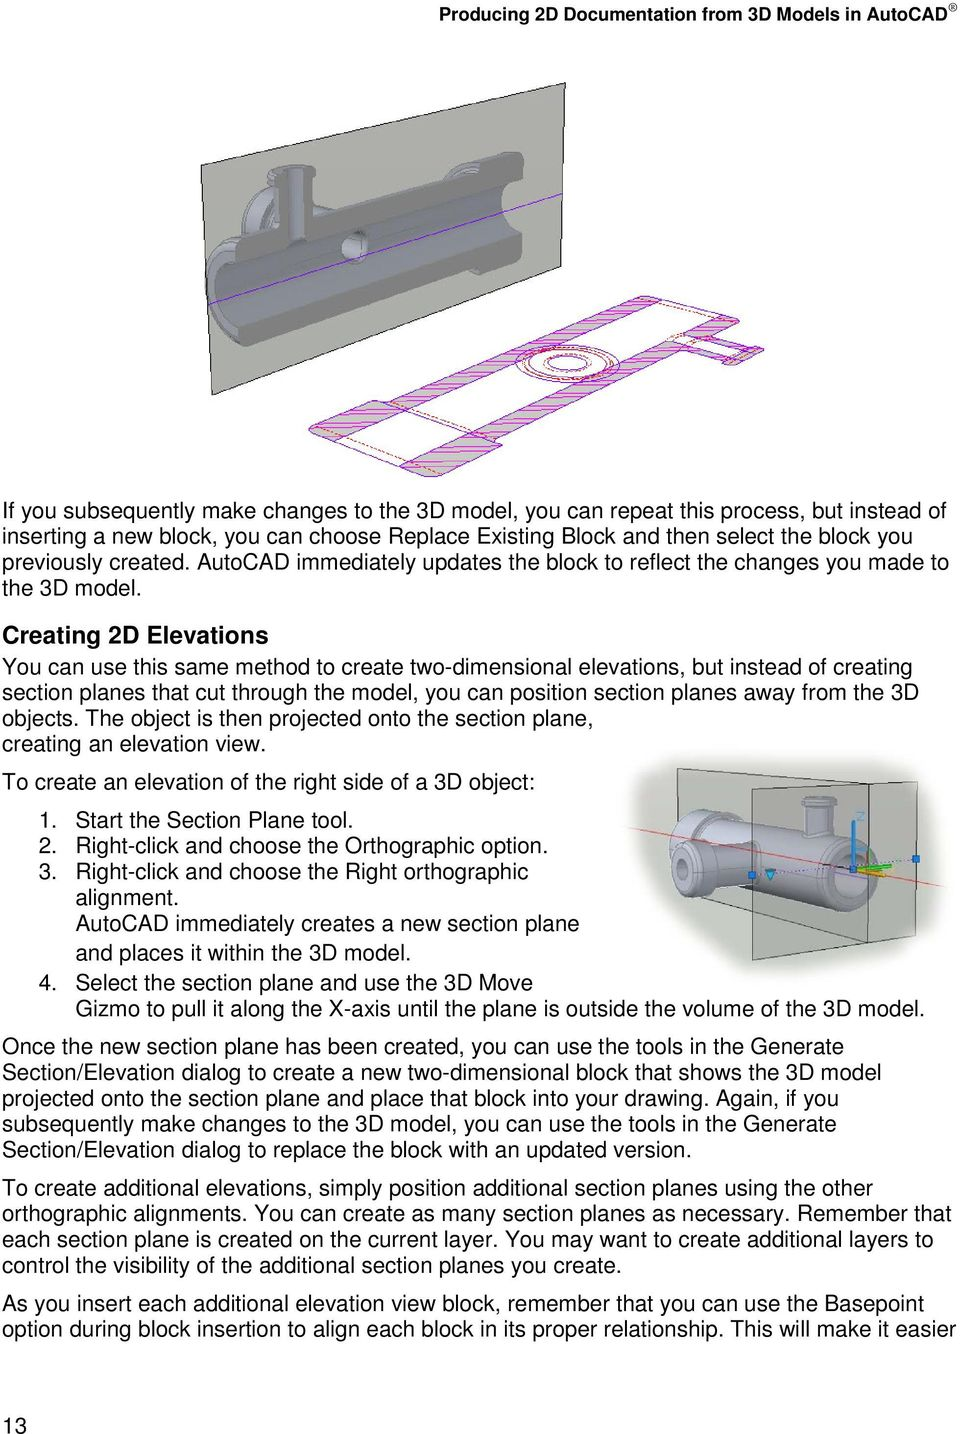 Producing 2D Documentation from 3D Models in AutoCAD - PDF